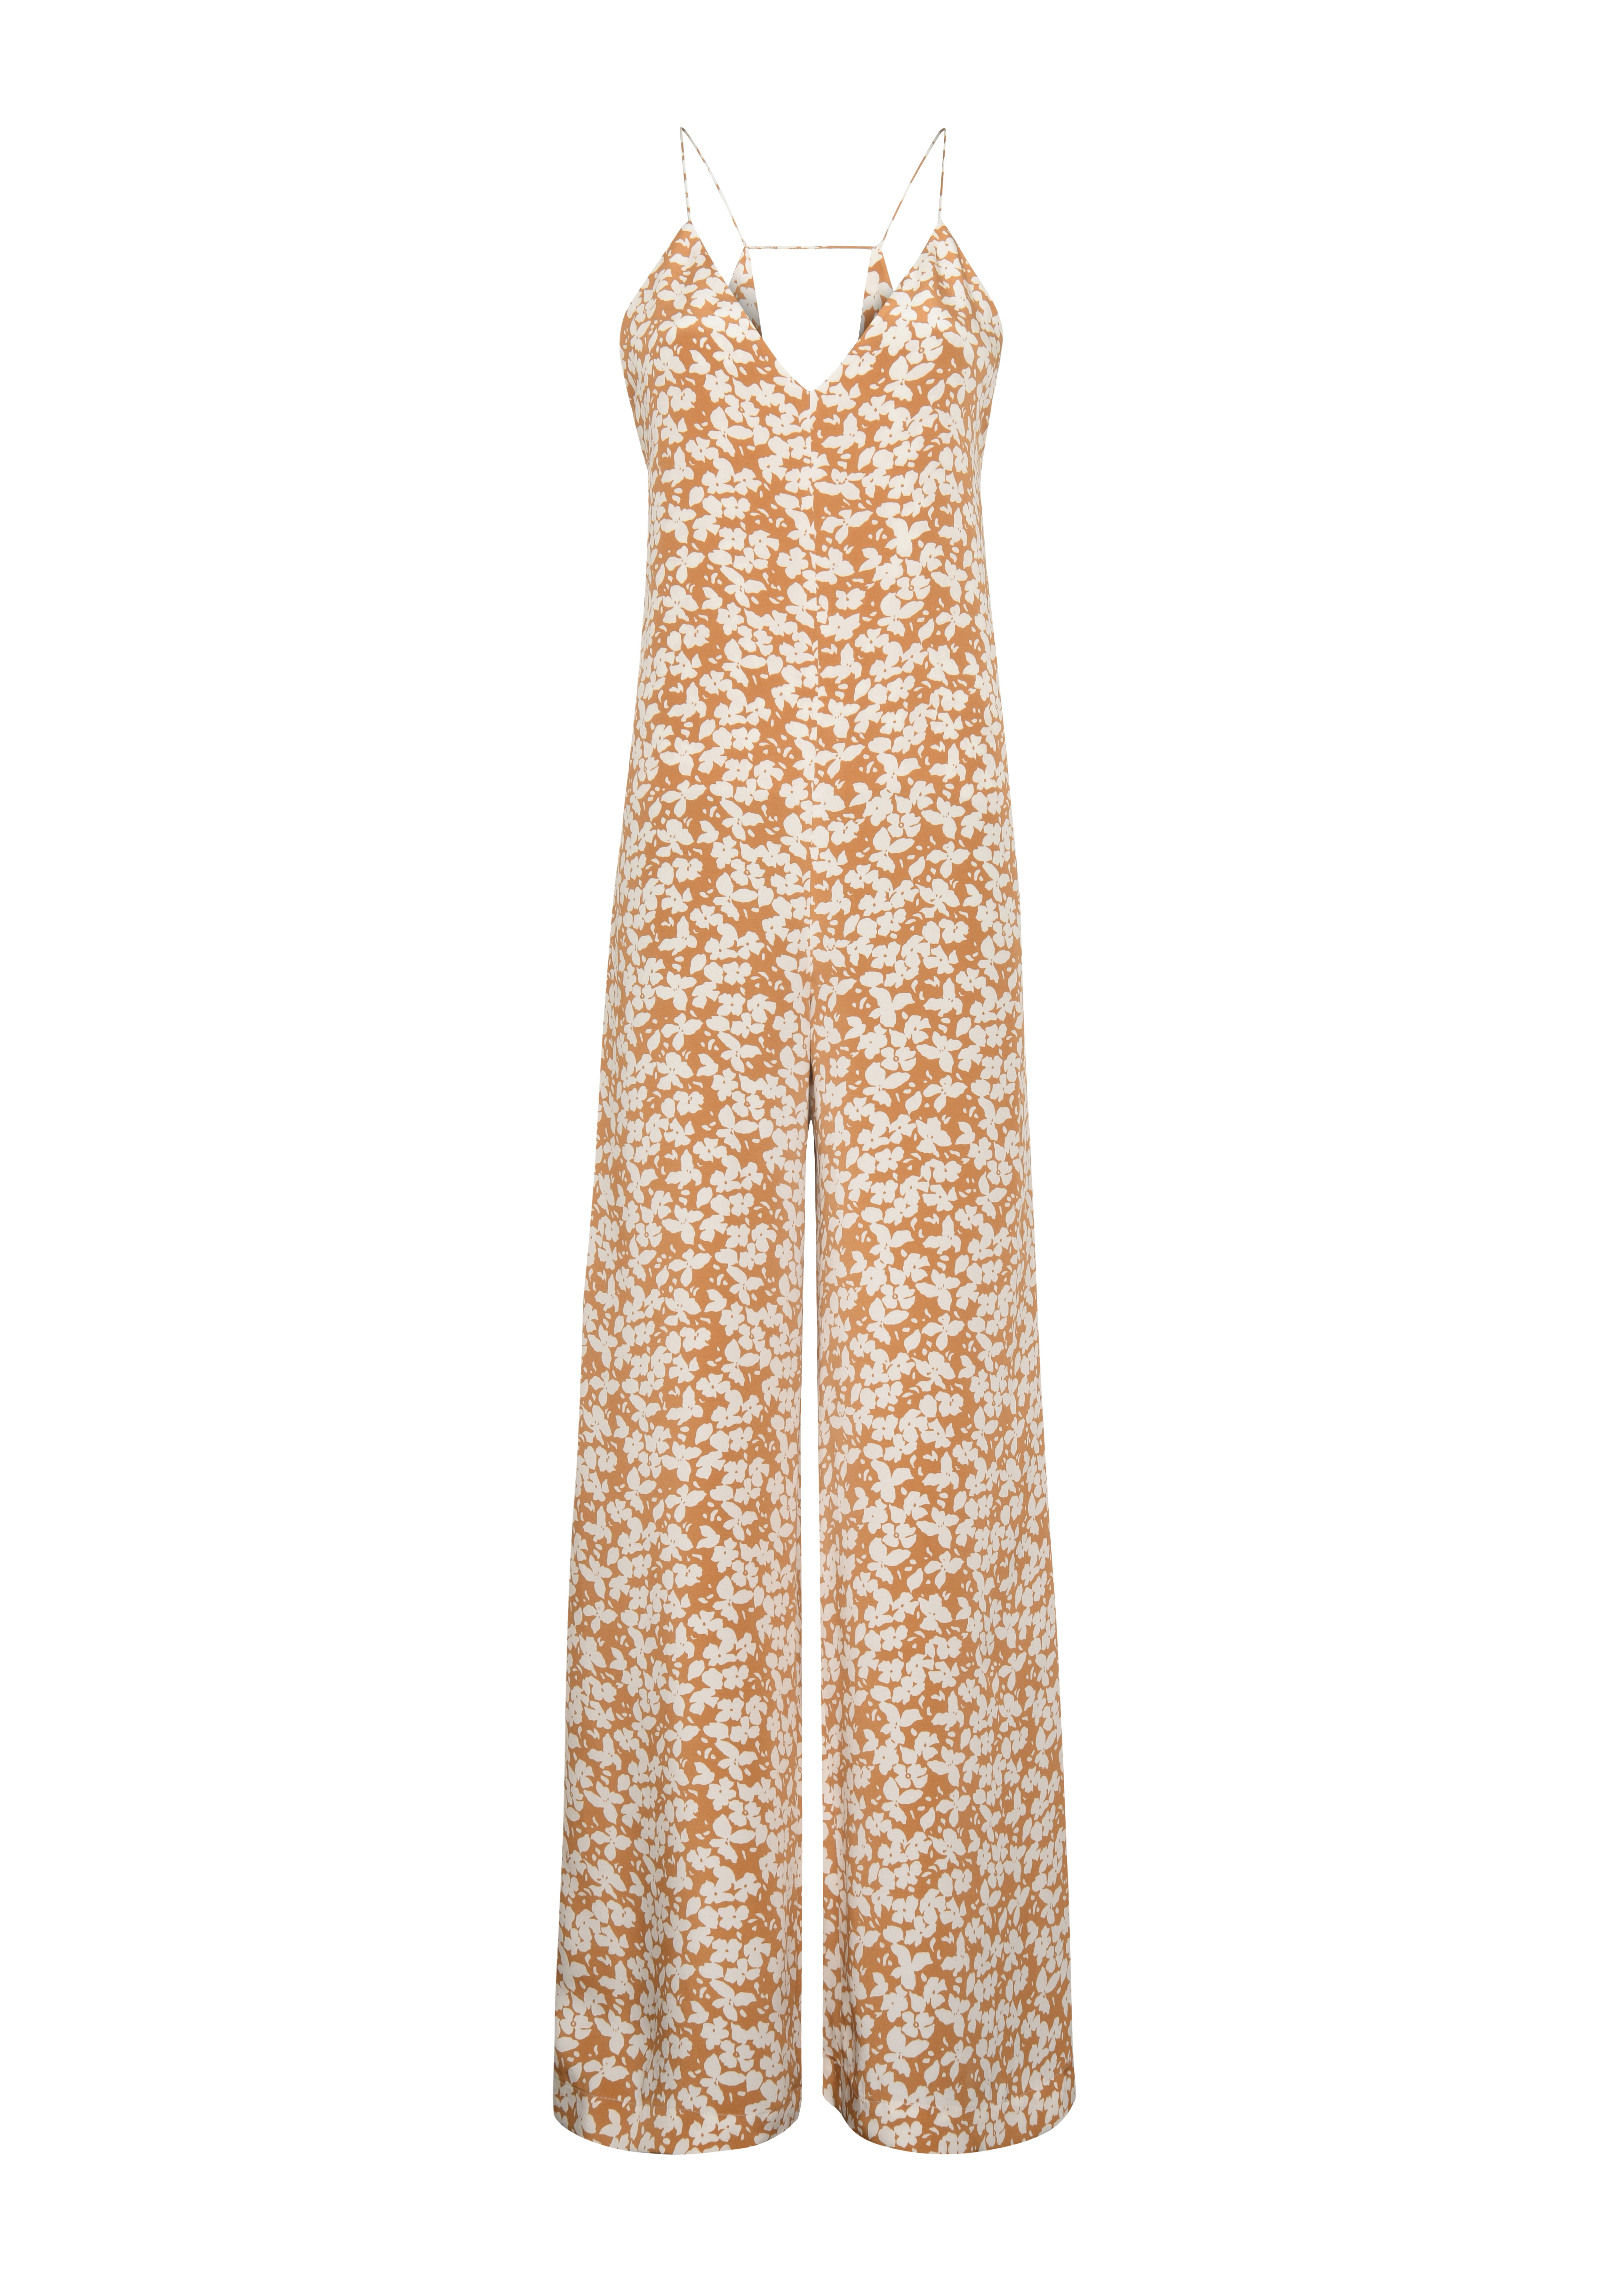 Fleurette Jumpsuit - Tangerine by Podeny on curated-crowd.com